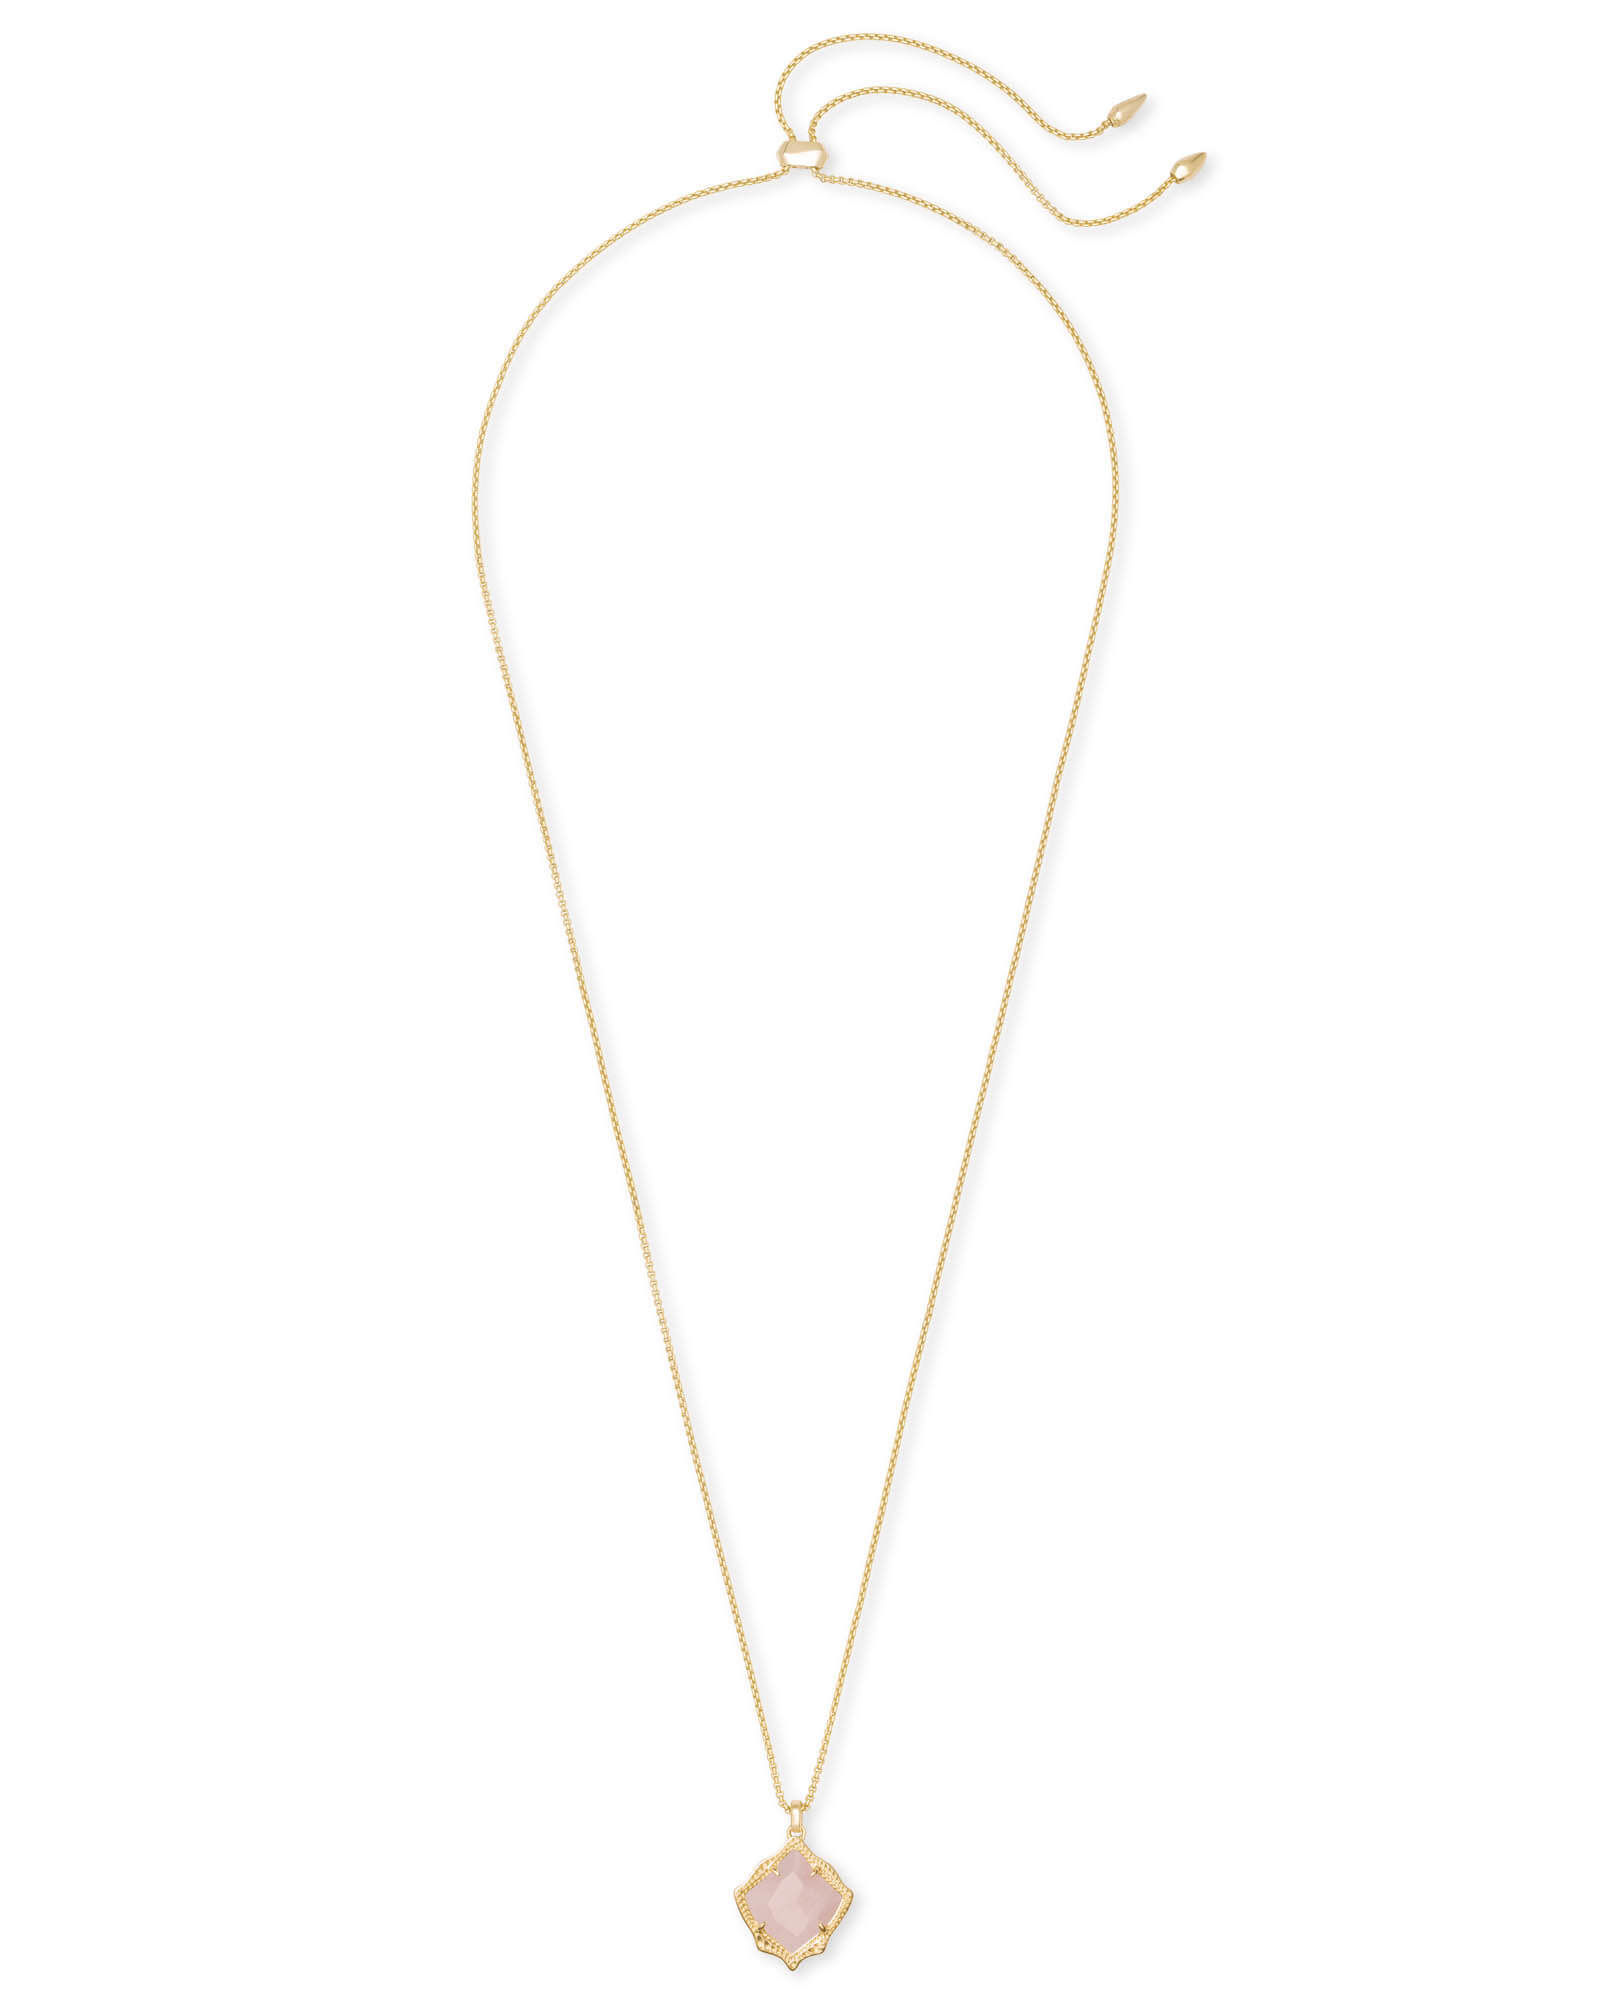 Kacey Gold Long Pendant Necklace in Rose Quartz